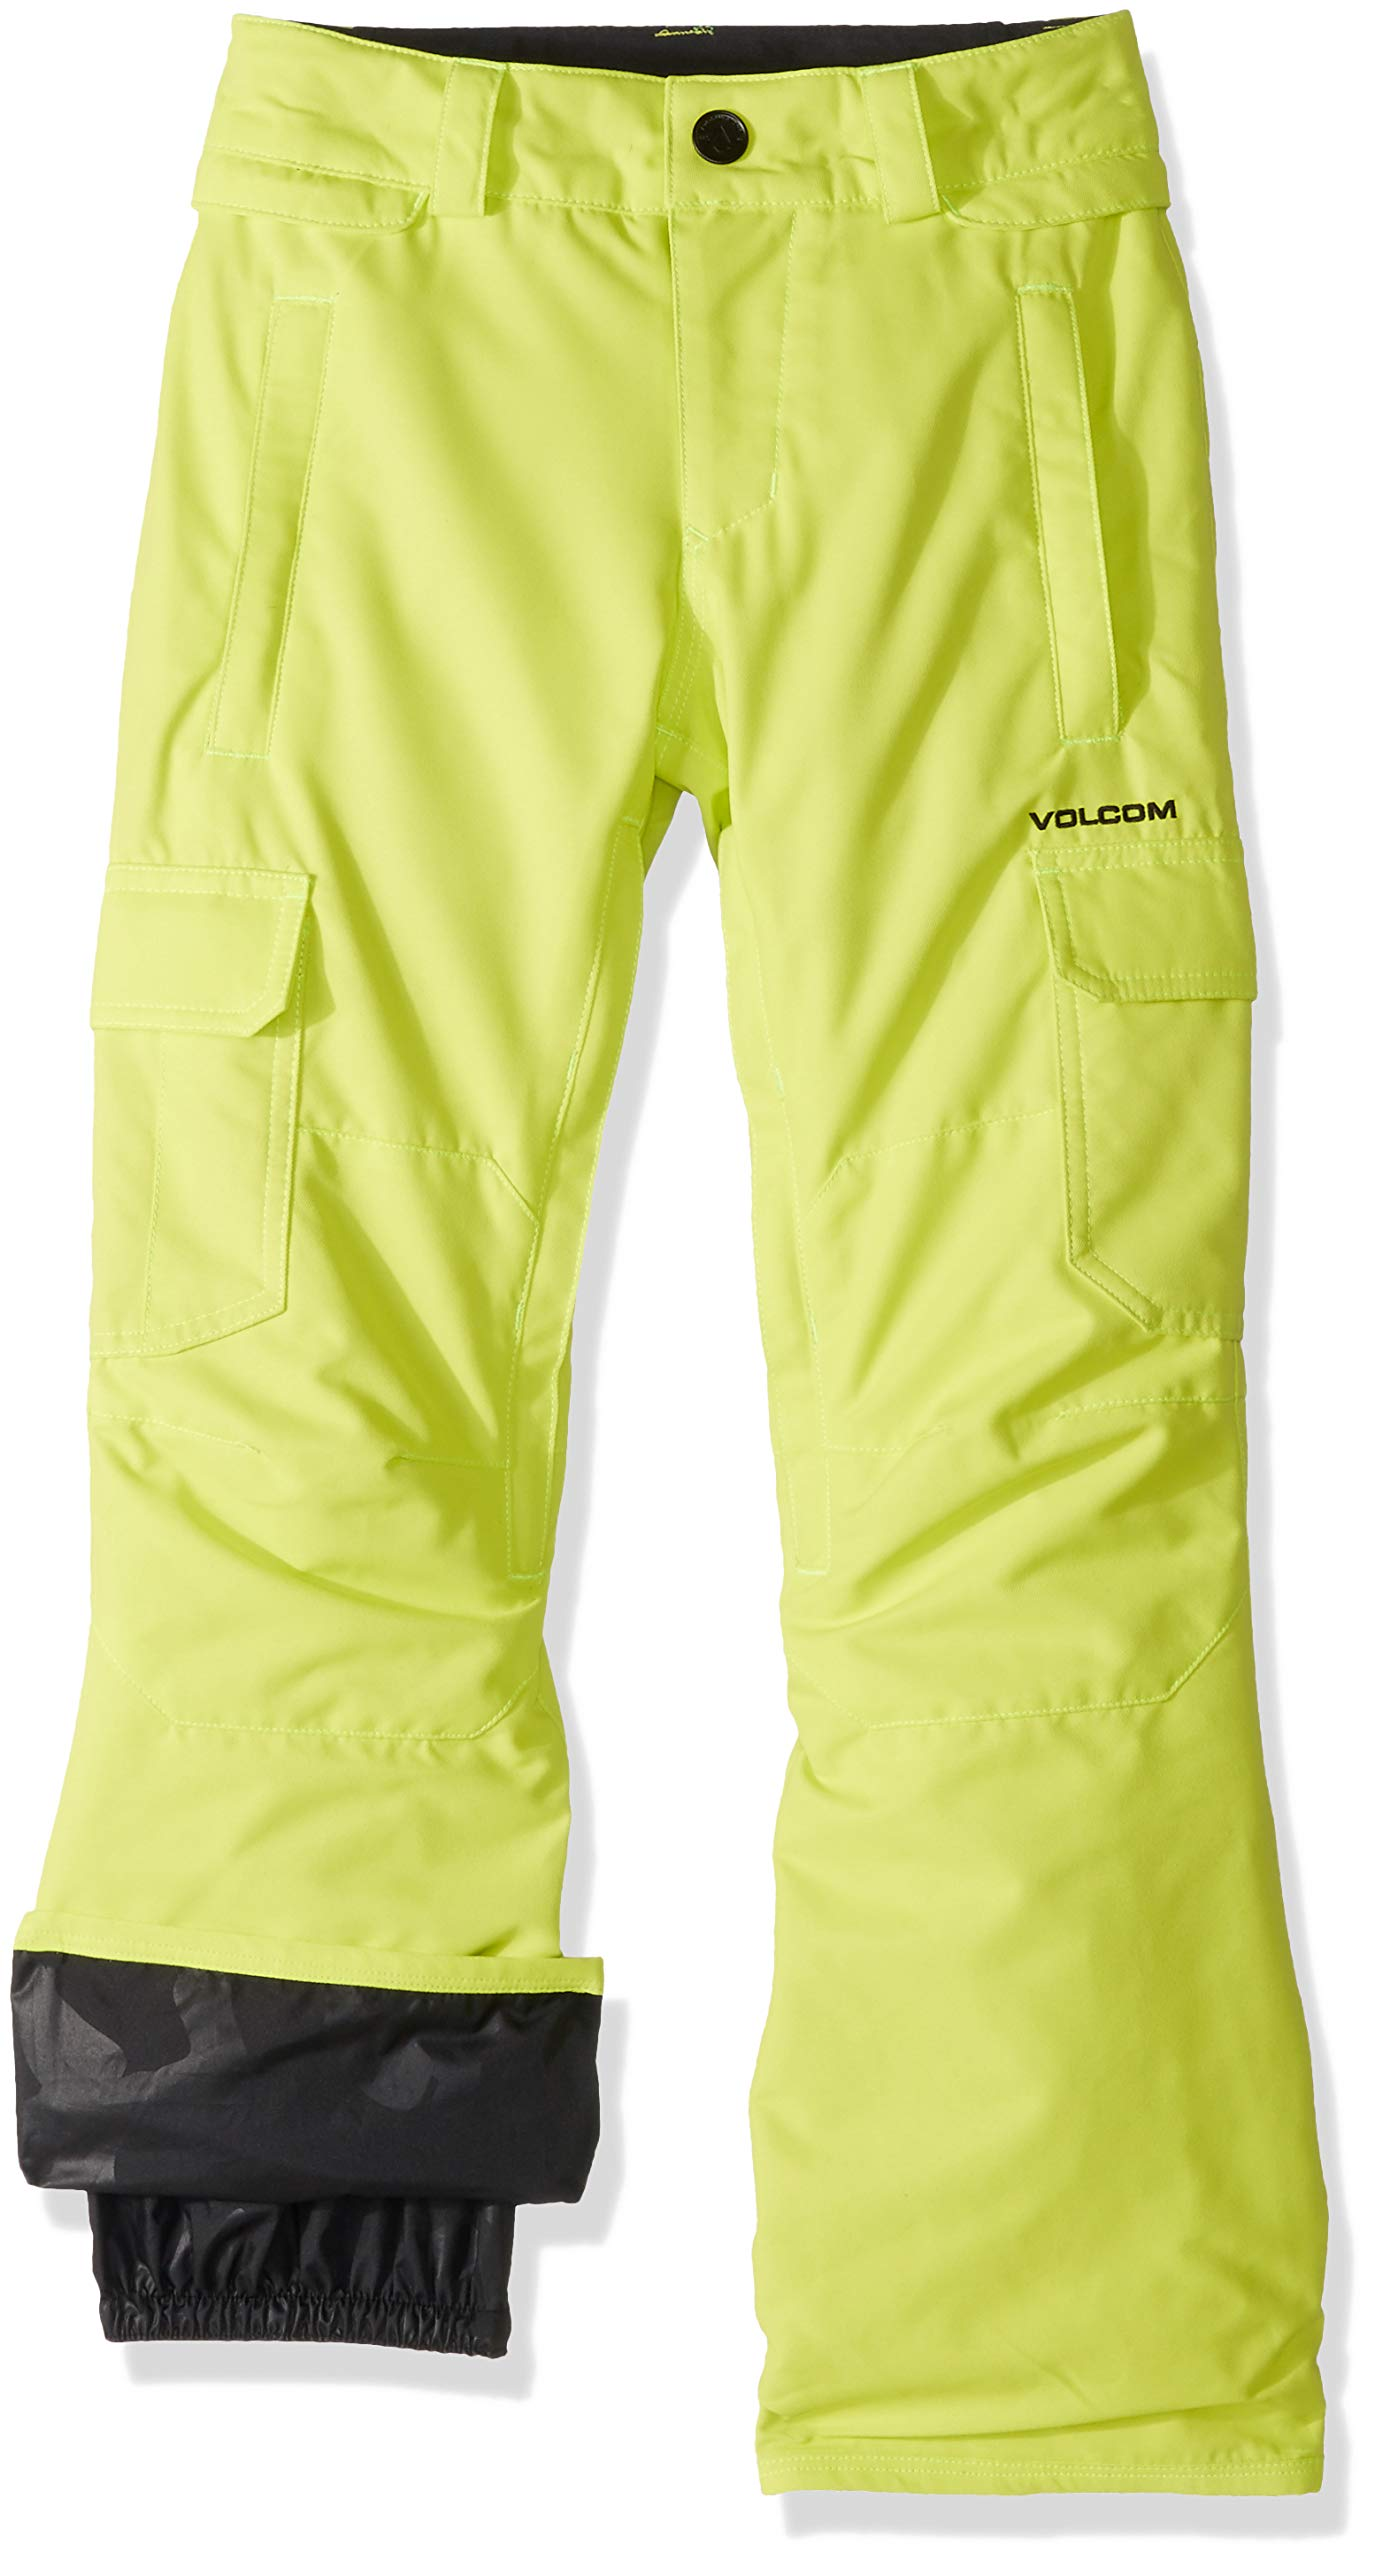 Volcom Boys' Big Cargo Insulated 2 Layer Shell Snow Pant, Lime, Extra Small